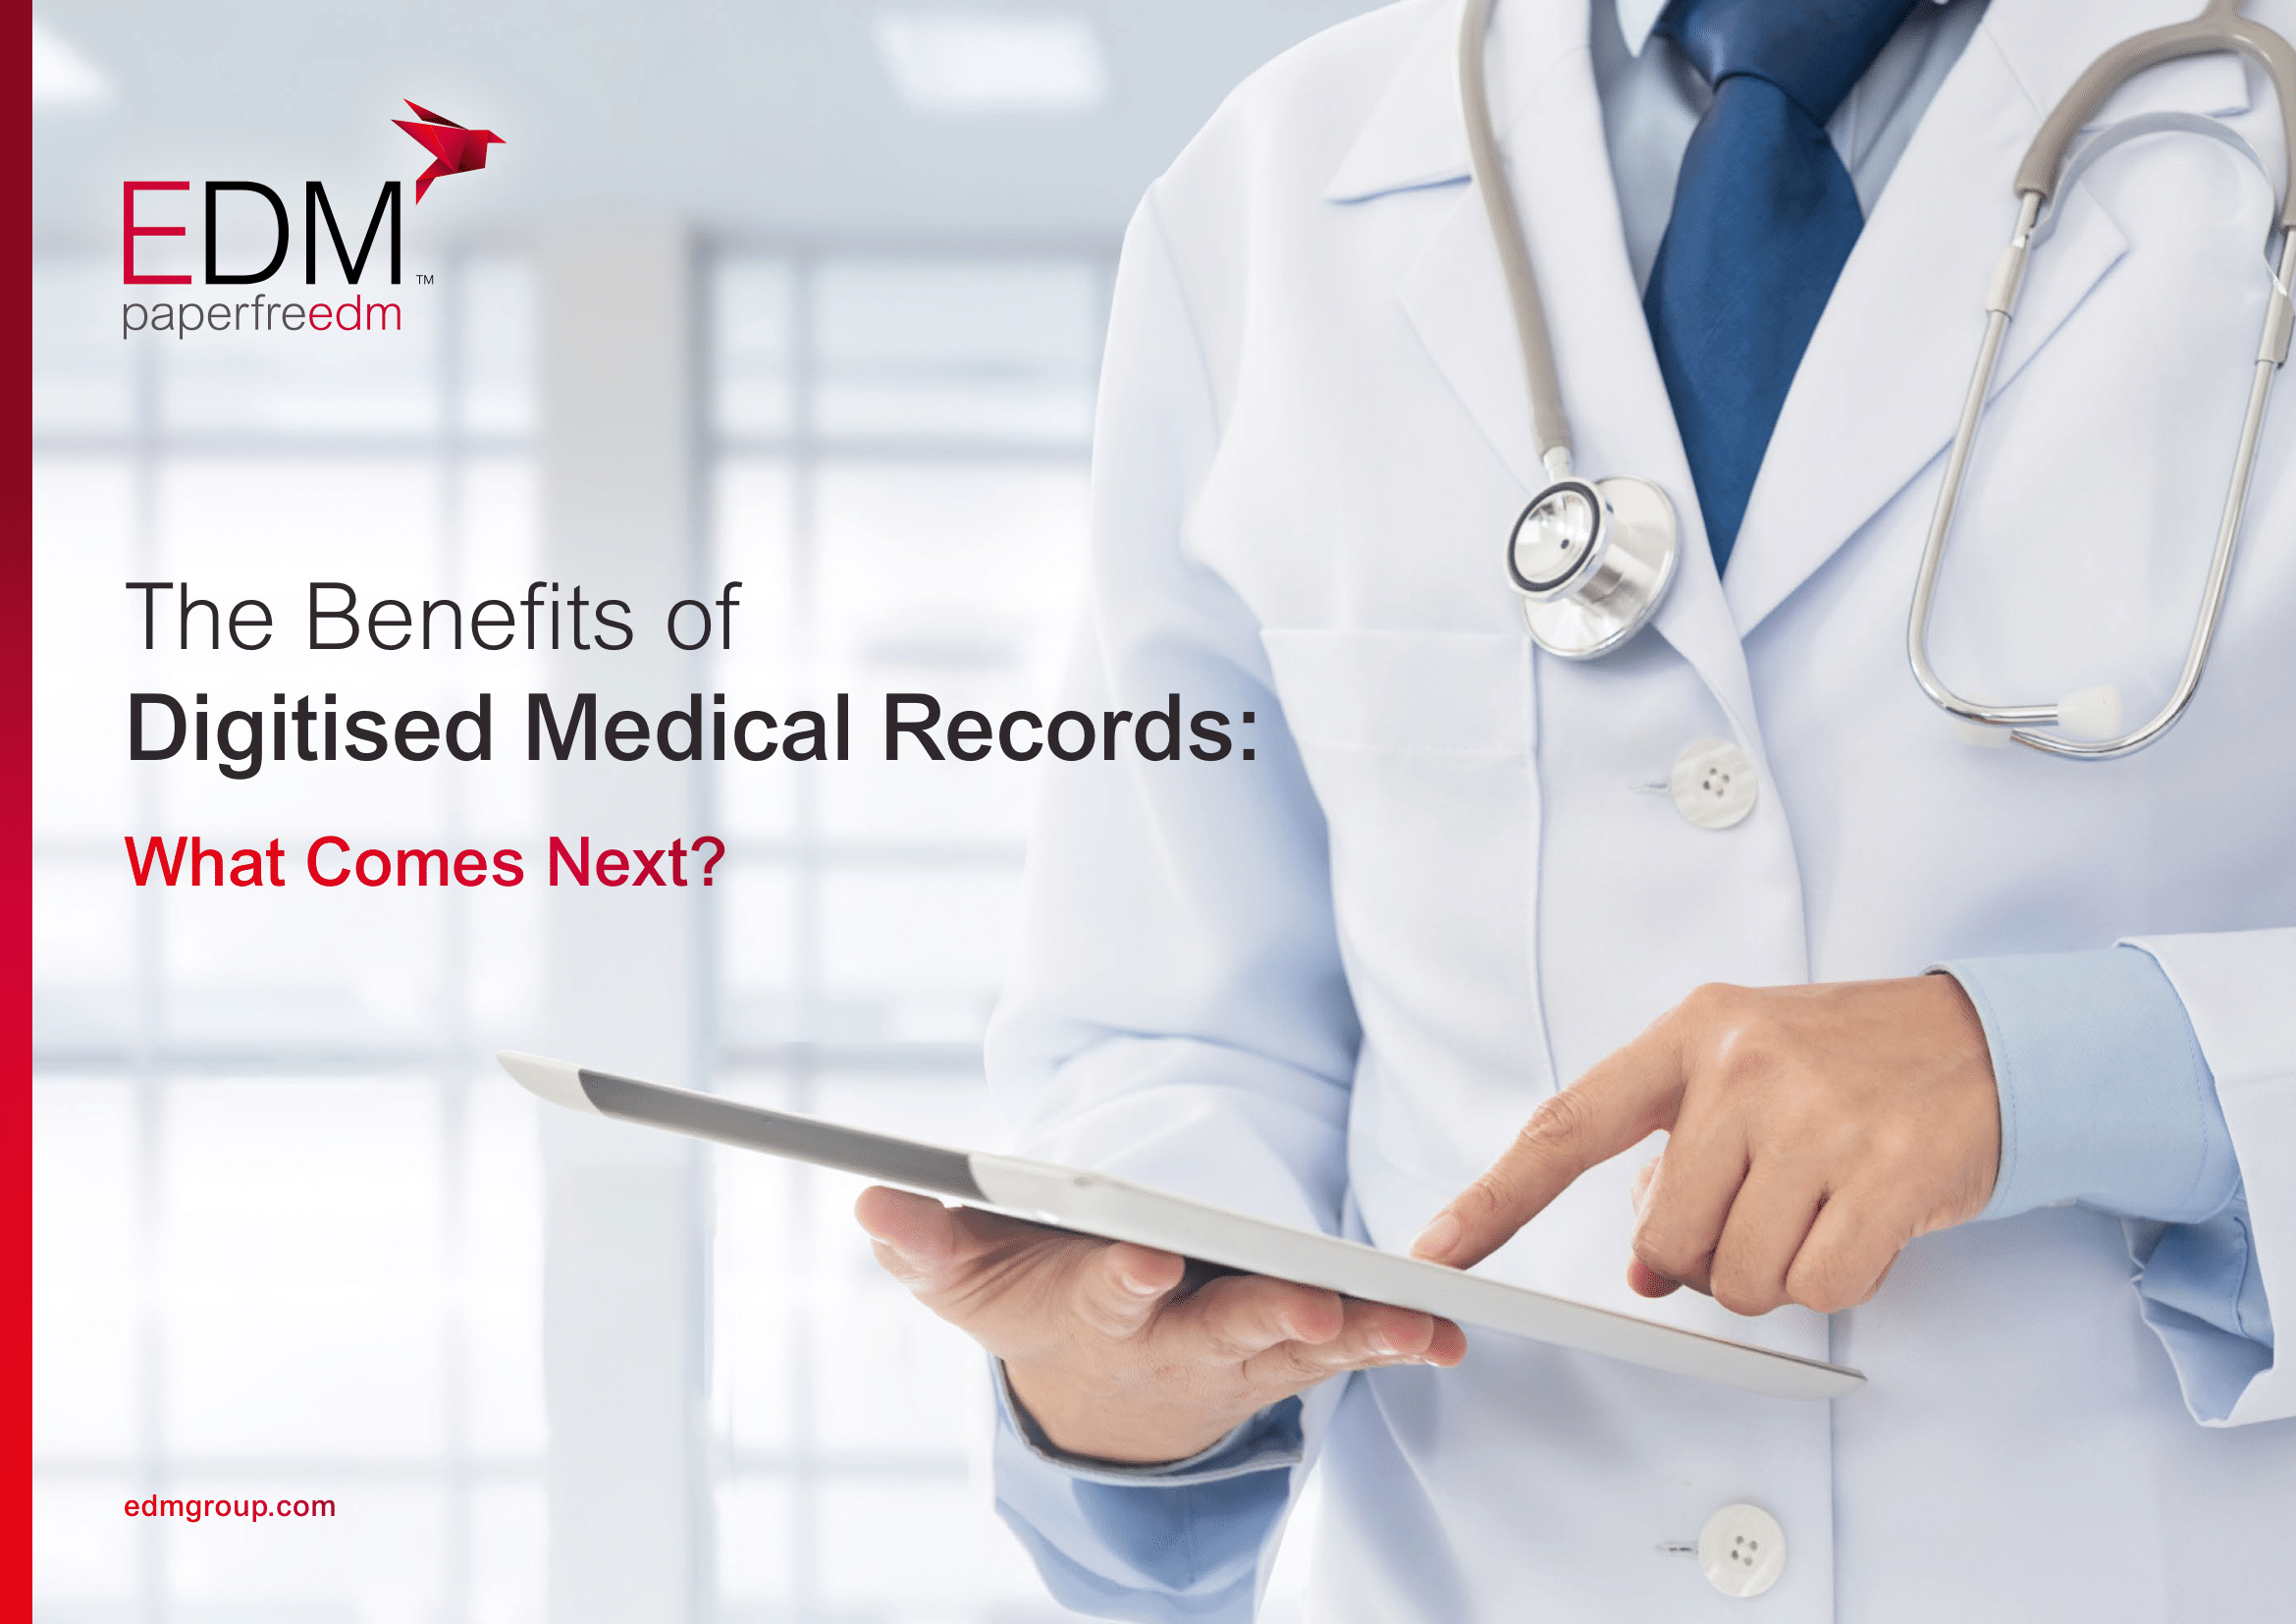 The Benefits of Digitised Medical Records: What Comes Next?